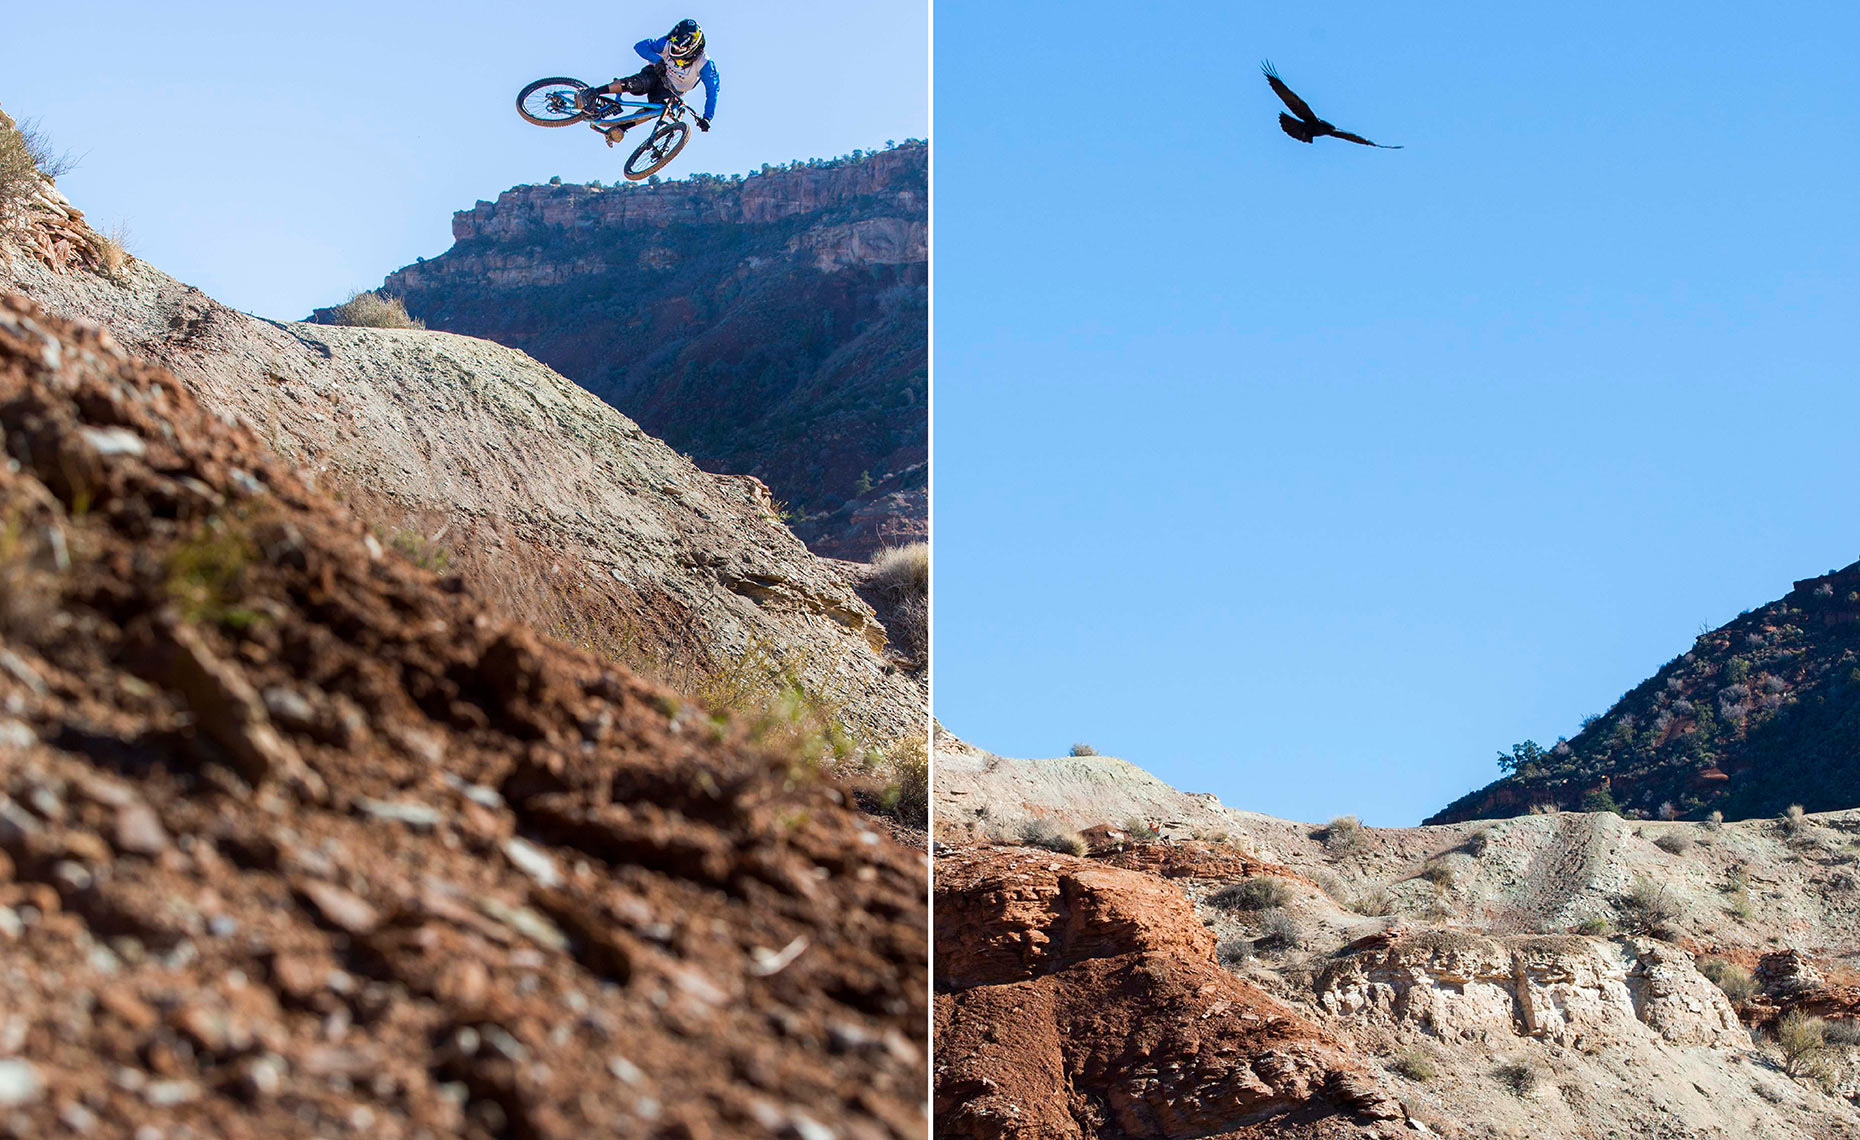 Cam_McCaul_Ronnie_Renner_Fox_Virgin_Utah_Rampage_Chris_Wellhausen_10